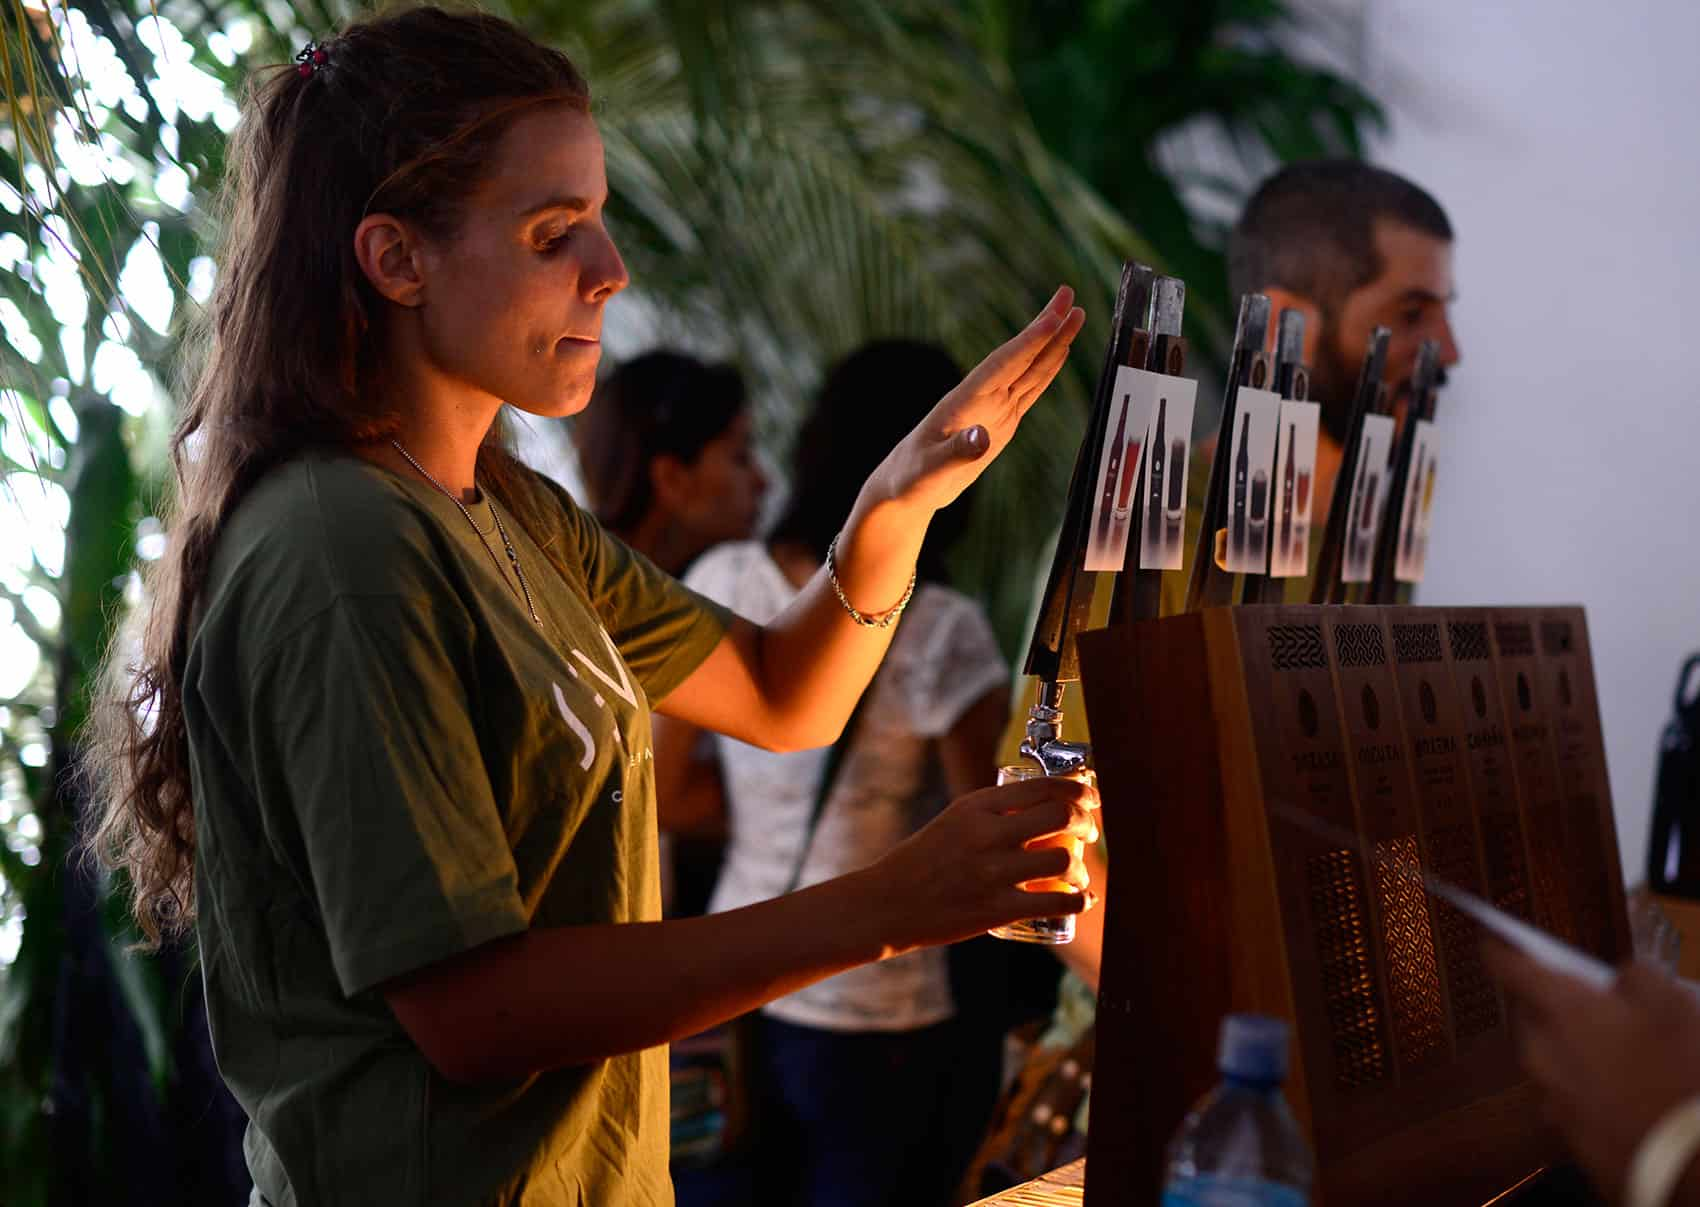 Costa Rica Craft Beer Festival: A bartender pours beer at Selva brewing company